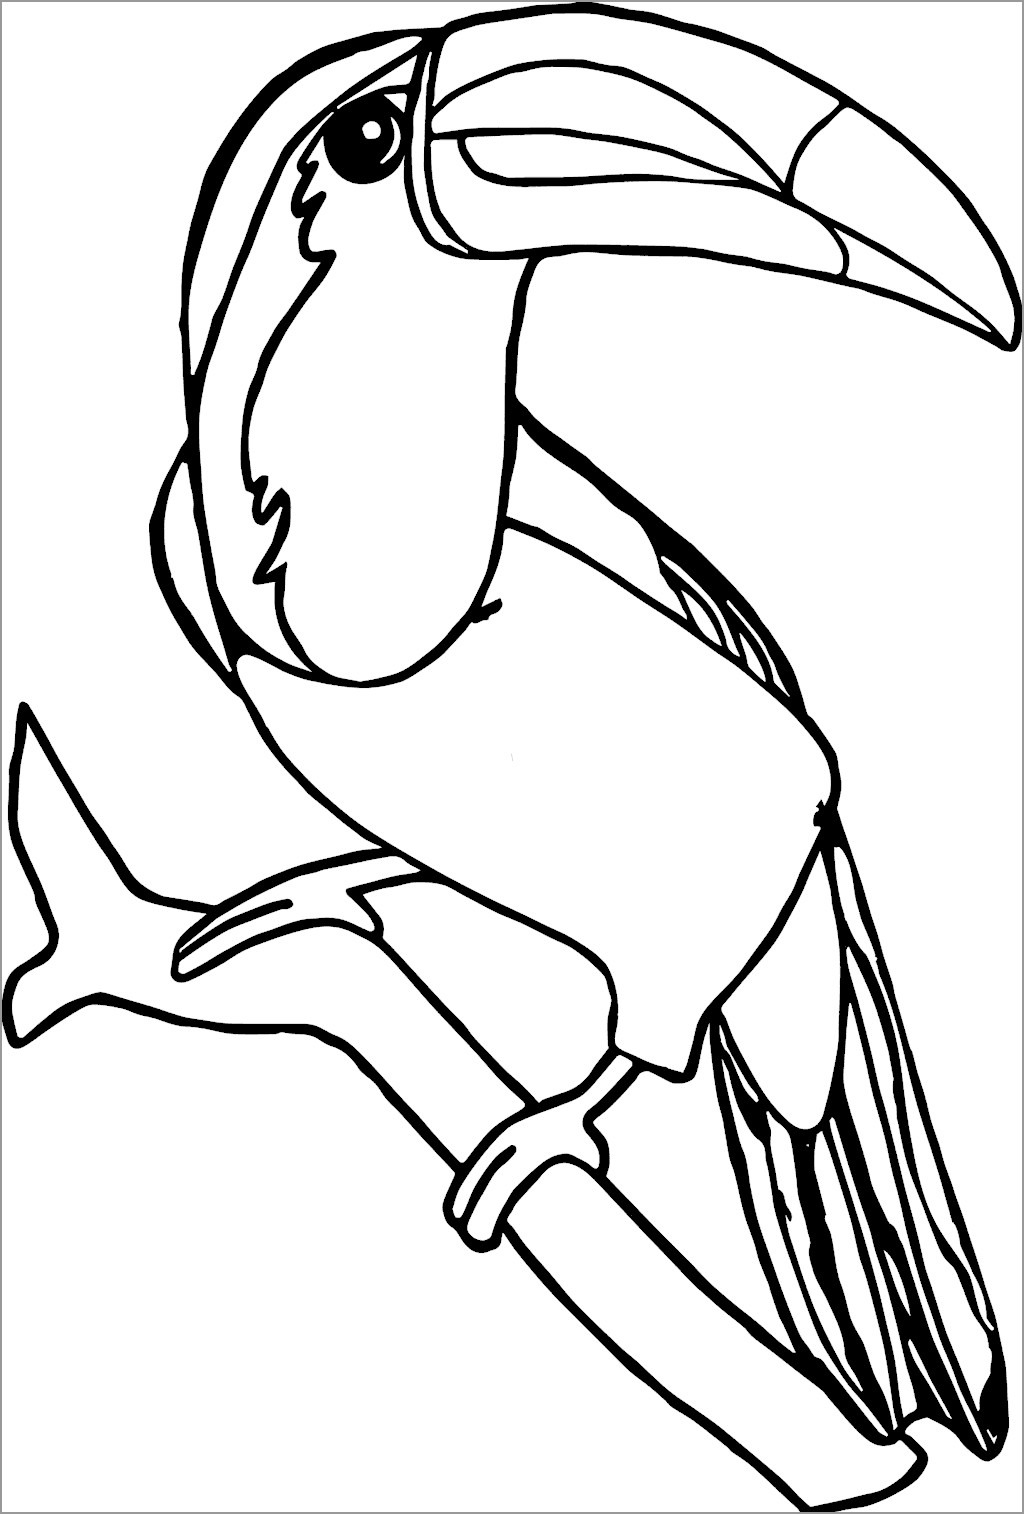 Printable toucan Coloring Page